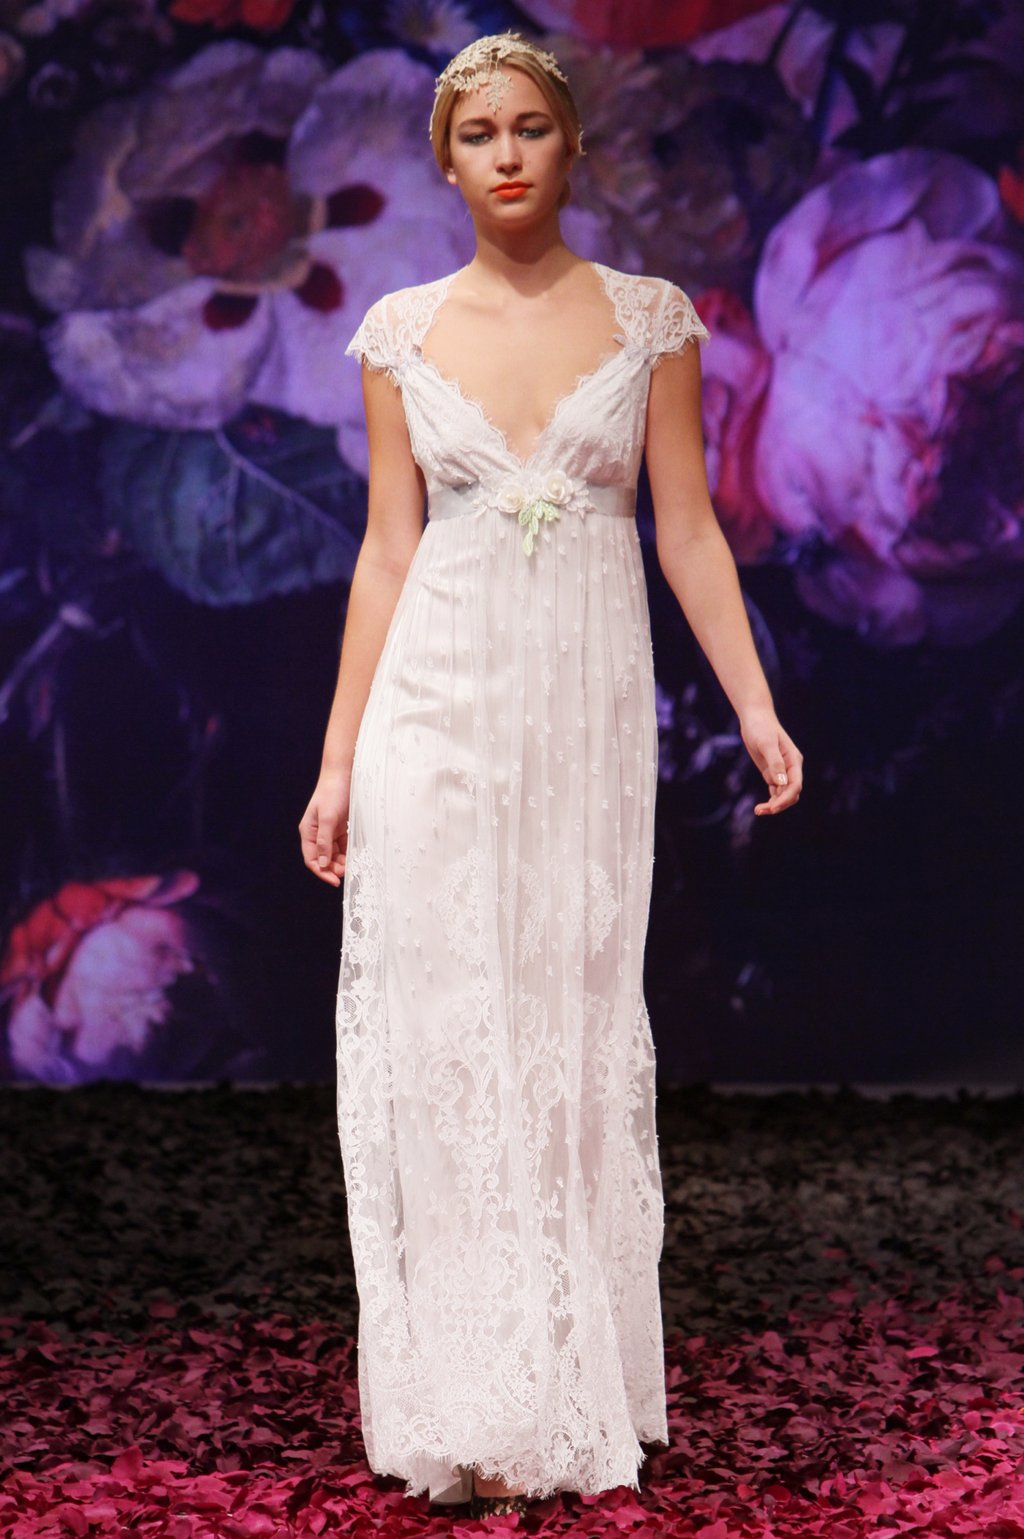 Minuet-wedding-dress-by-claire-pettibone-2014-still-life-bridal-collection.full